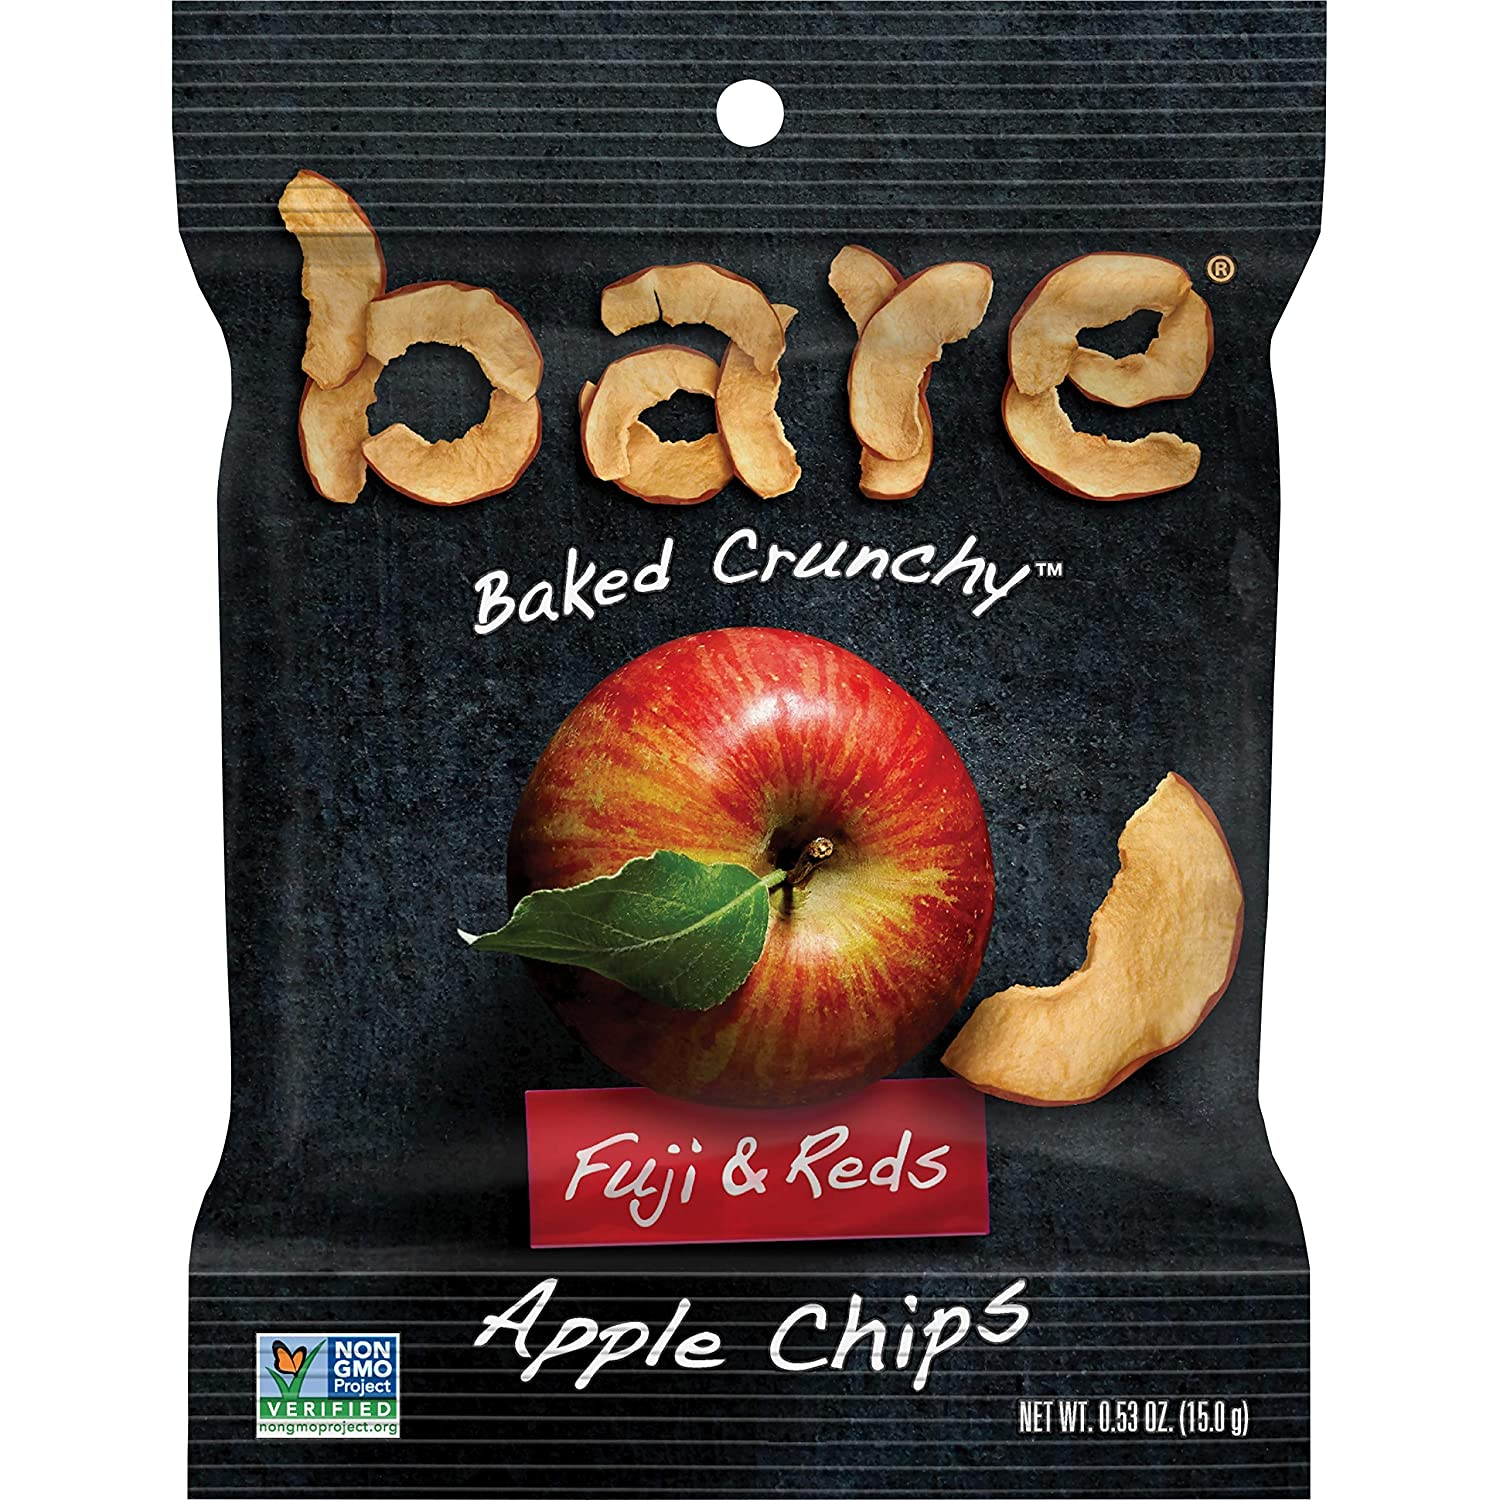 bare Baked Crunchy Apple Fruit Snack Pack, Gluten Free Snacks, Fujis & Reds, 0.53oz Snack Bags (16 Pack)